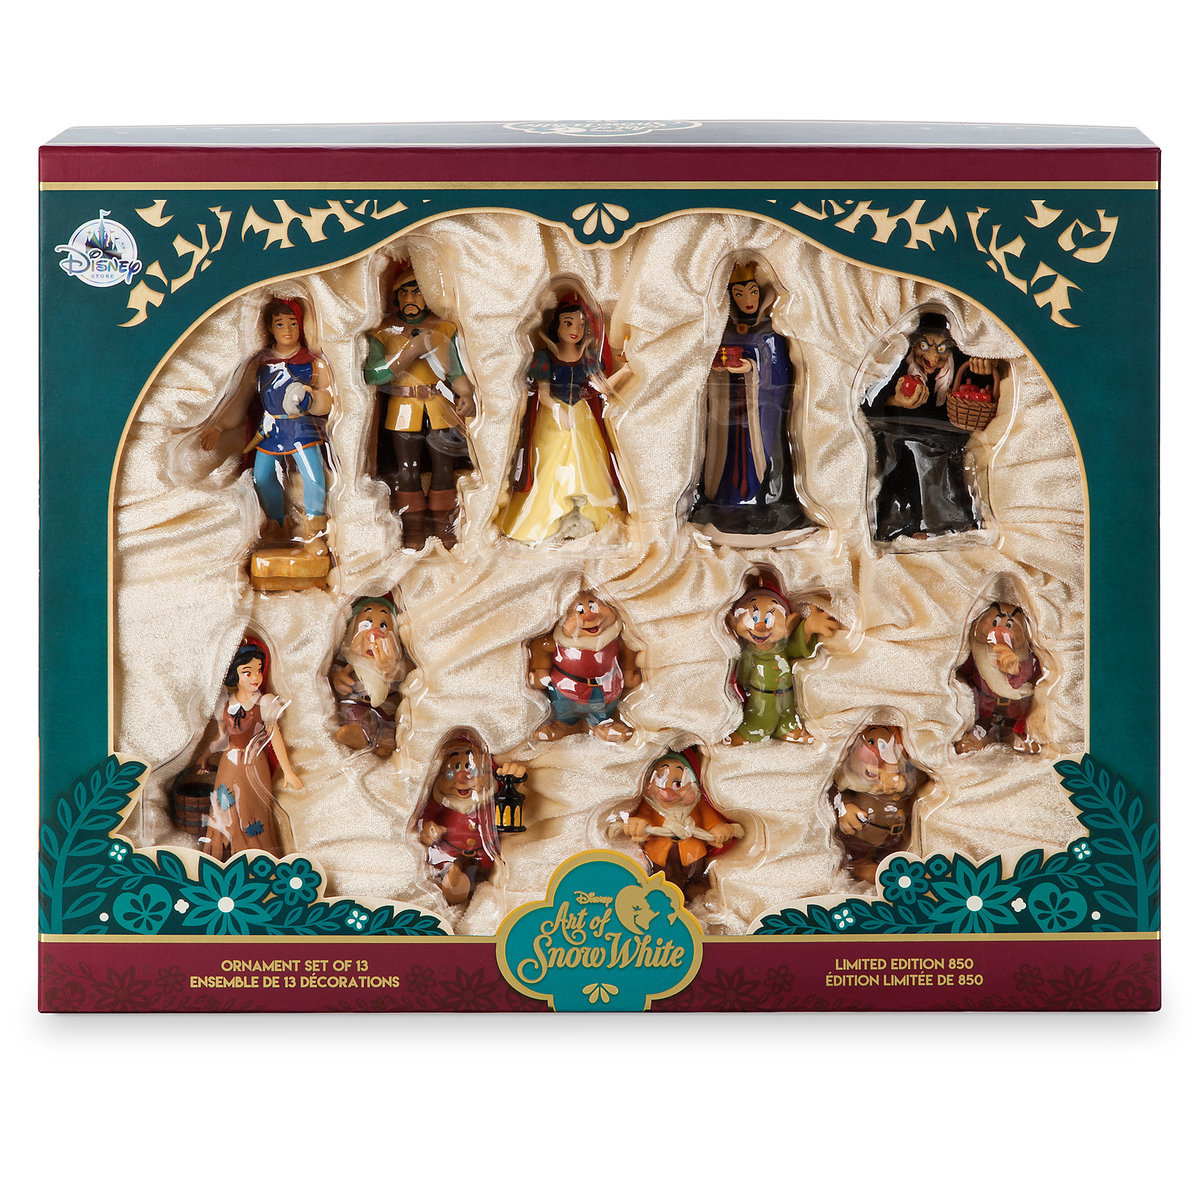 Art of Snow White Ornament Set - Limited Edition